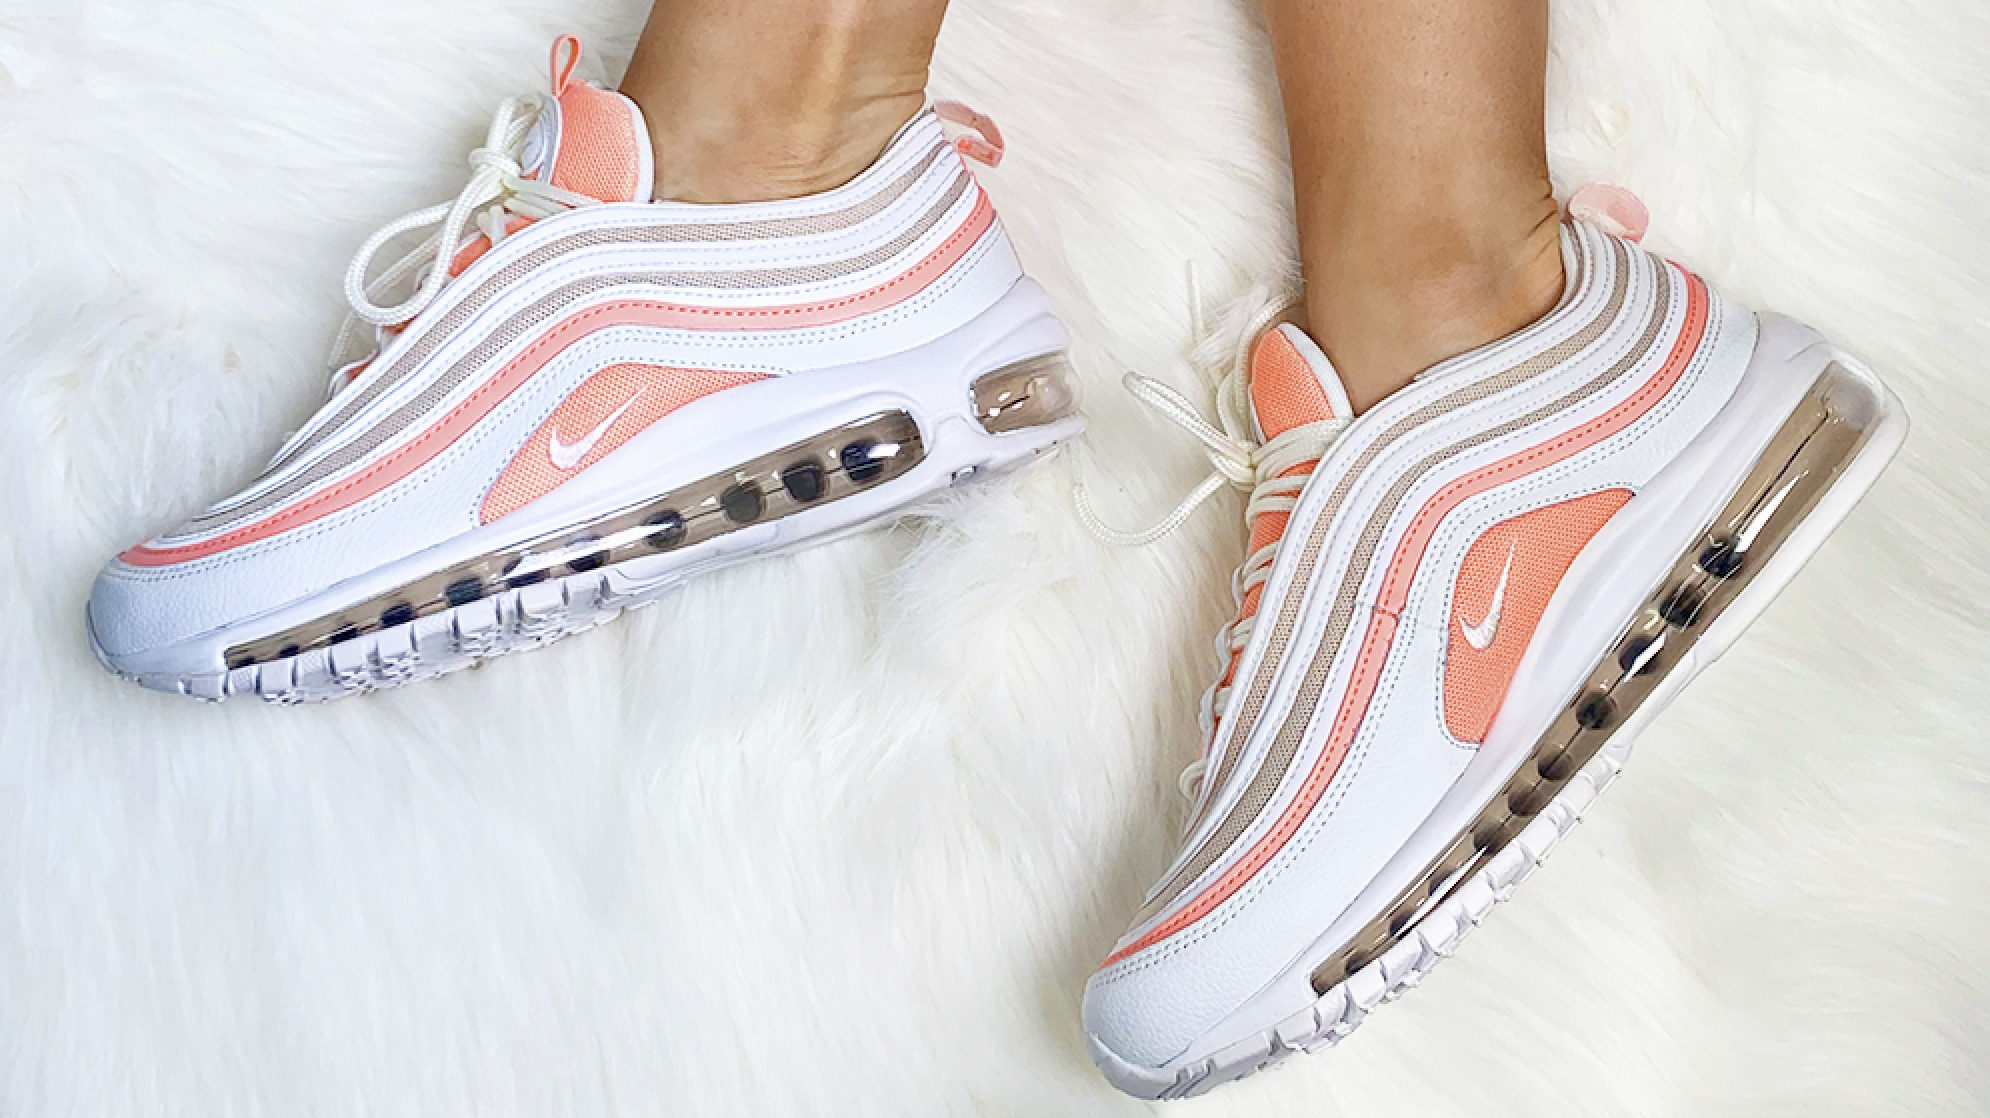 Air Max 97 Bleached Coral The Sole Womens